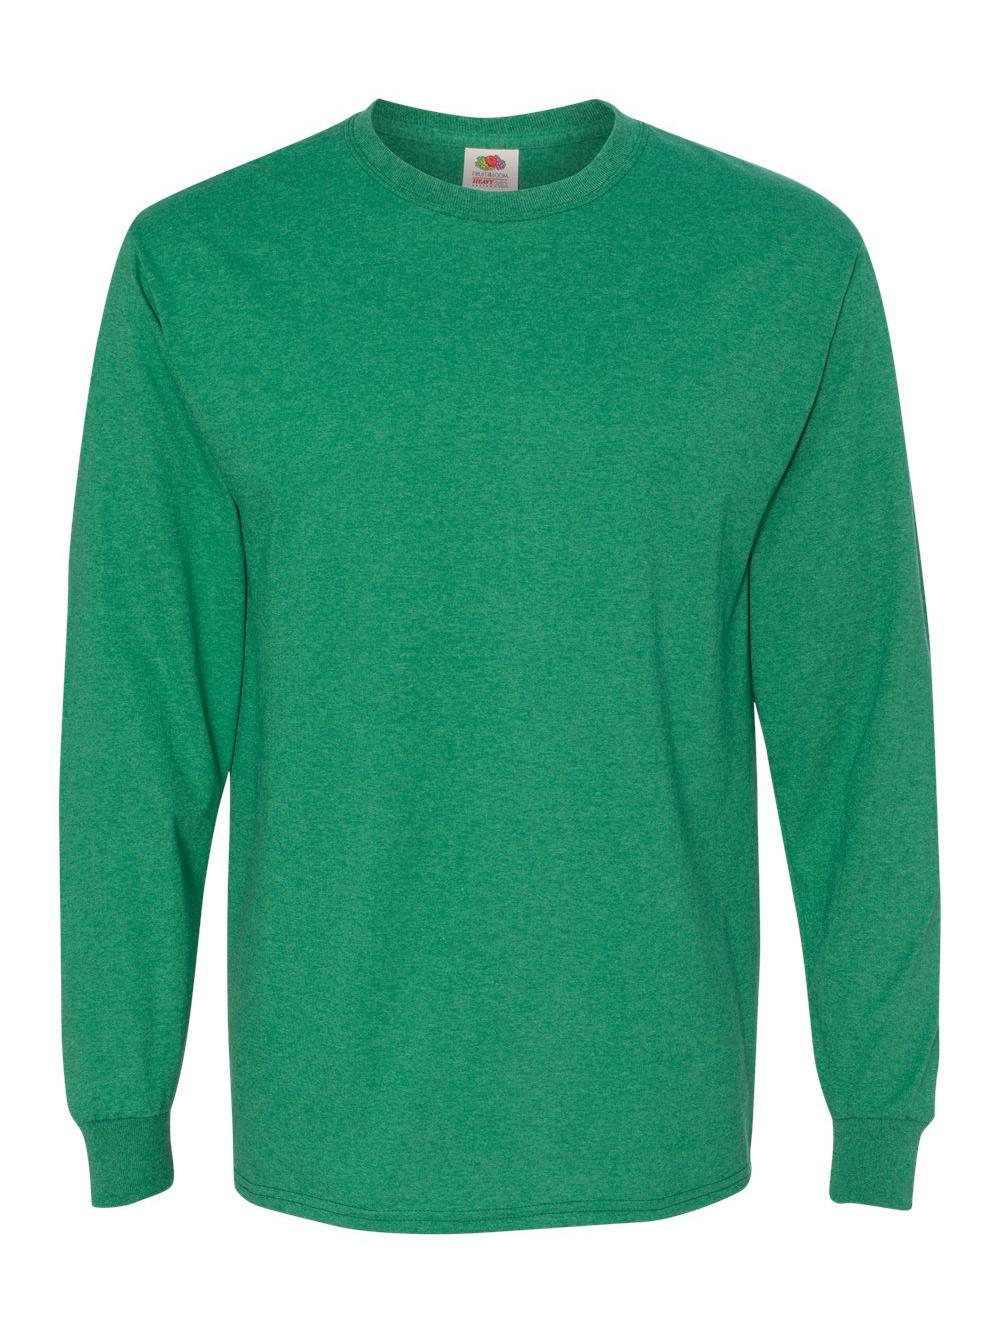 Fruit-of-the-Loom-HD-Cotton-Long-Sleeve-T-Shirt-4930R thumbnail 63